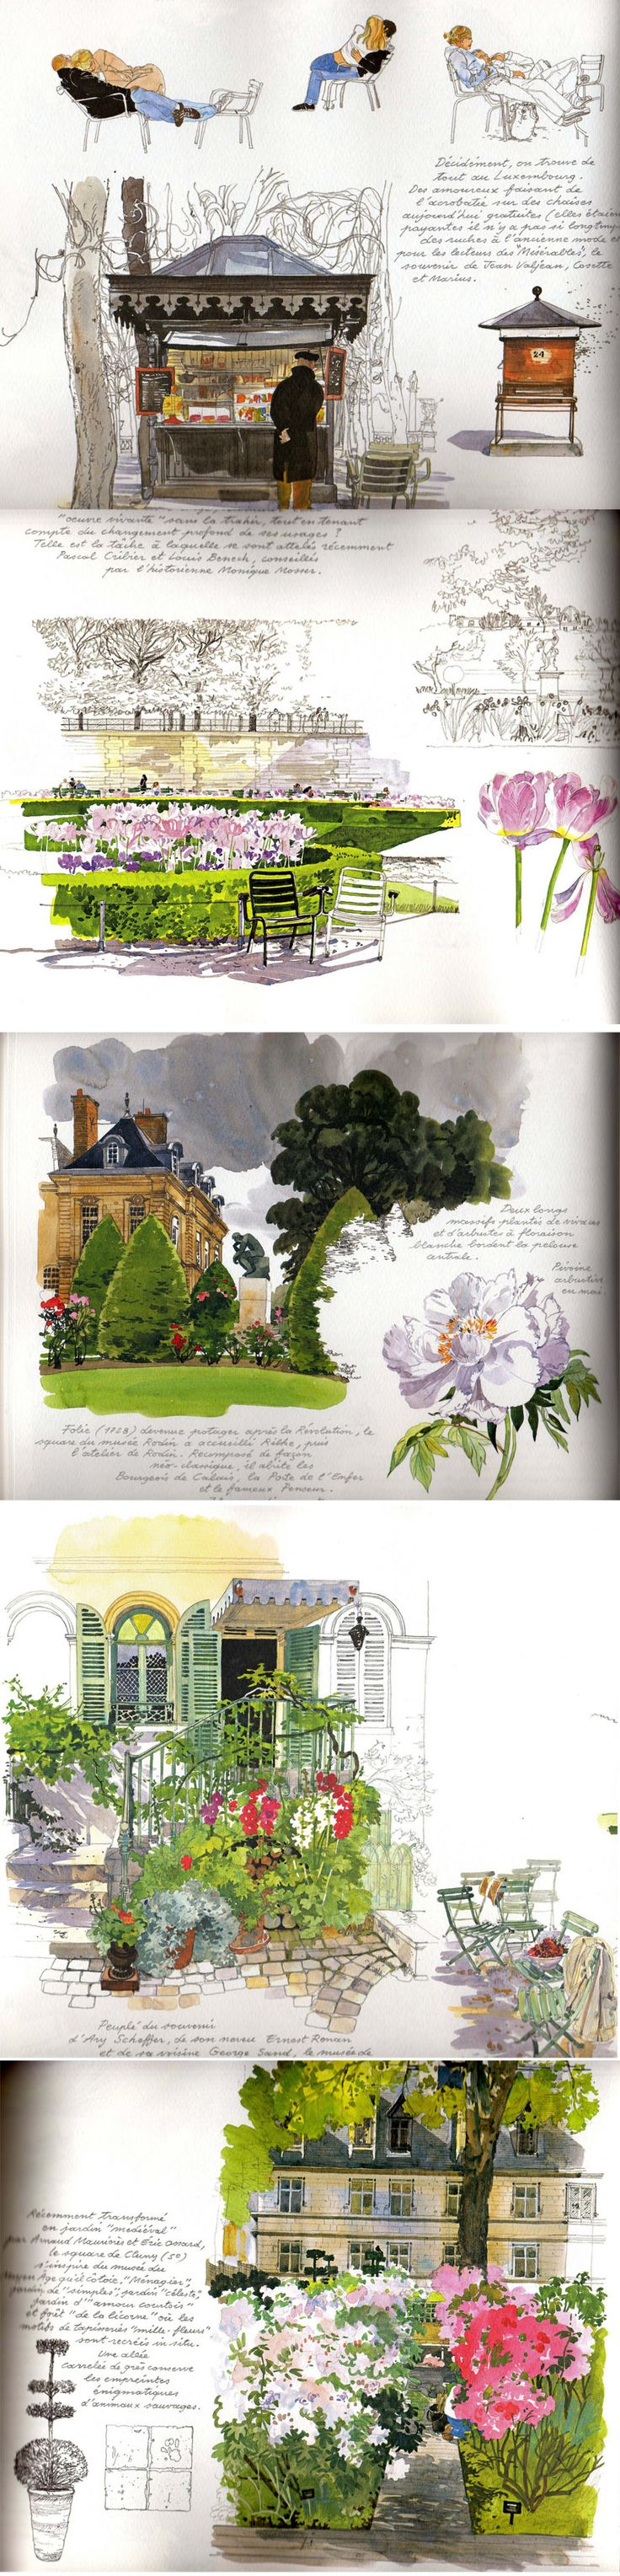 watercolors by Fabrice Moireau